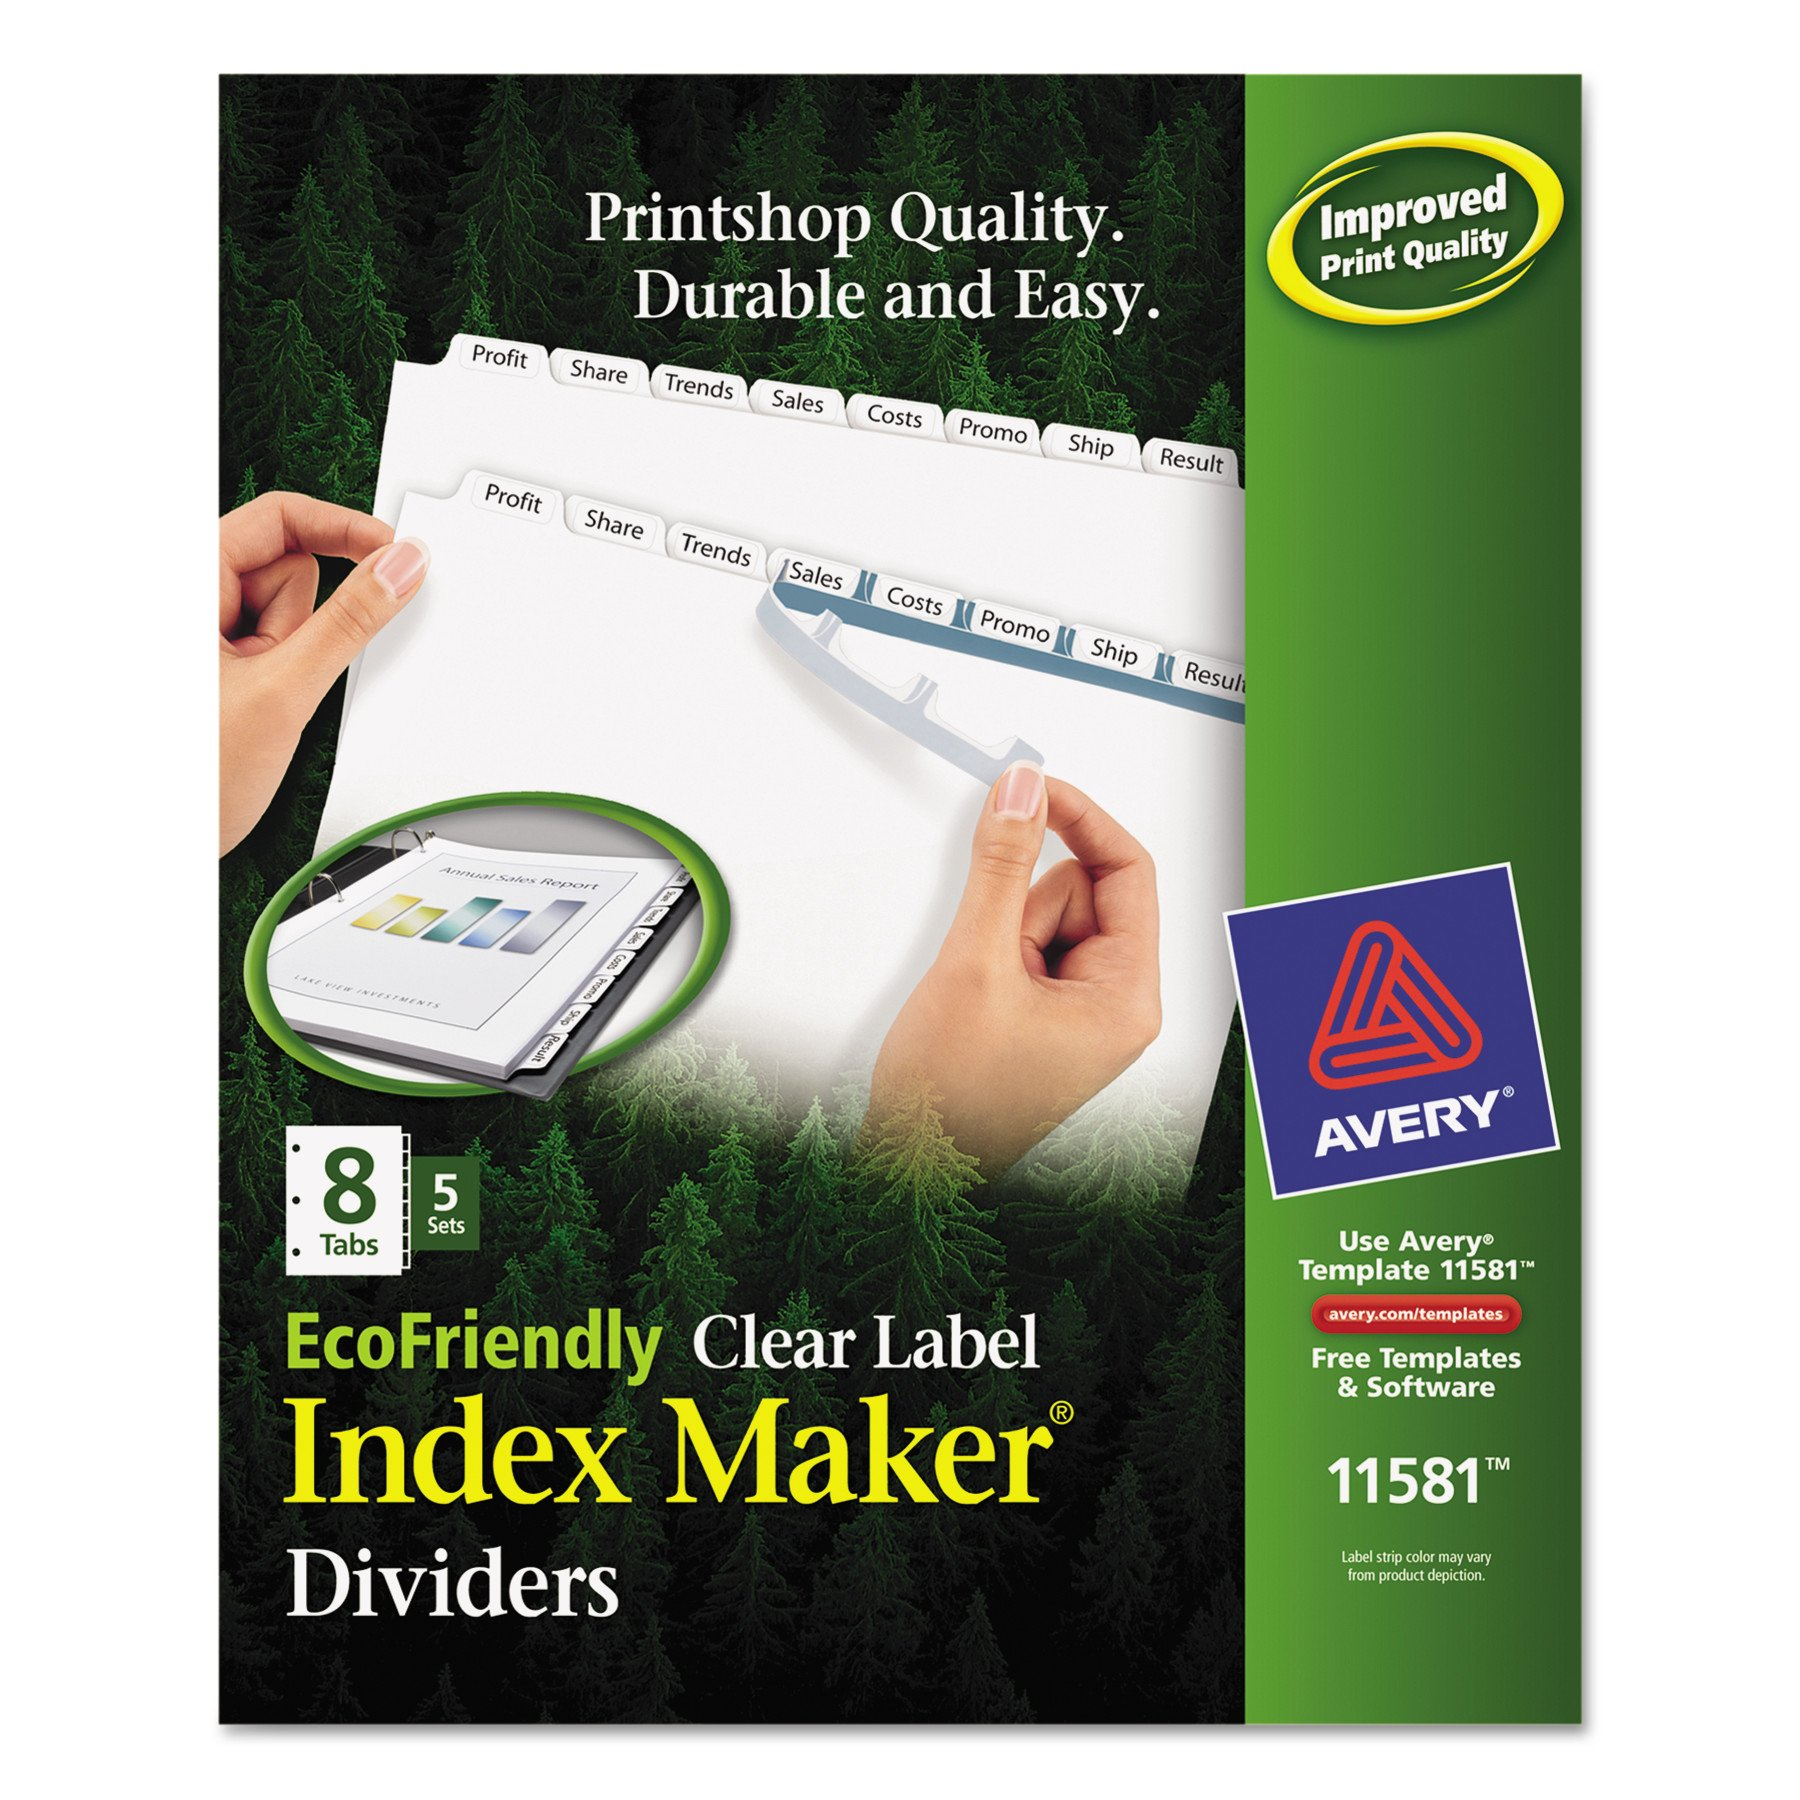 Avery 8-Tab Eco Friendly Binder Dividers, Easy Print & Apply Clear Label Strip, Index Maker, 5 Sets (11581) by AVERY